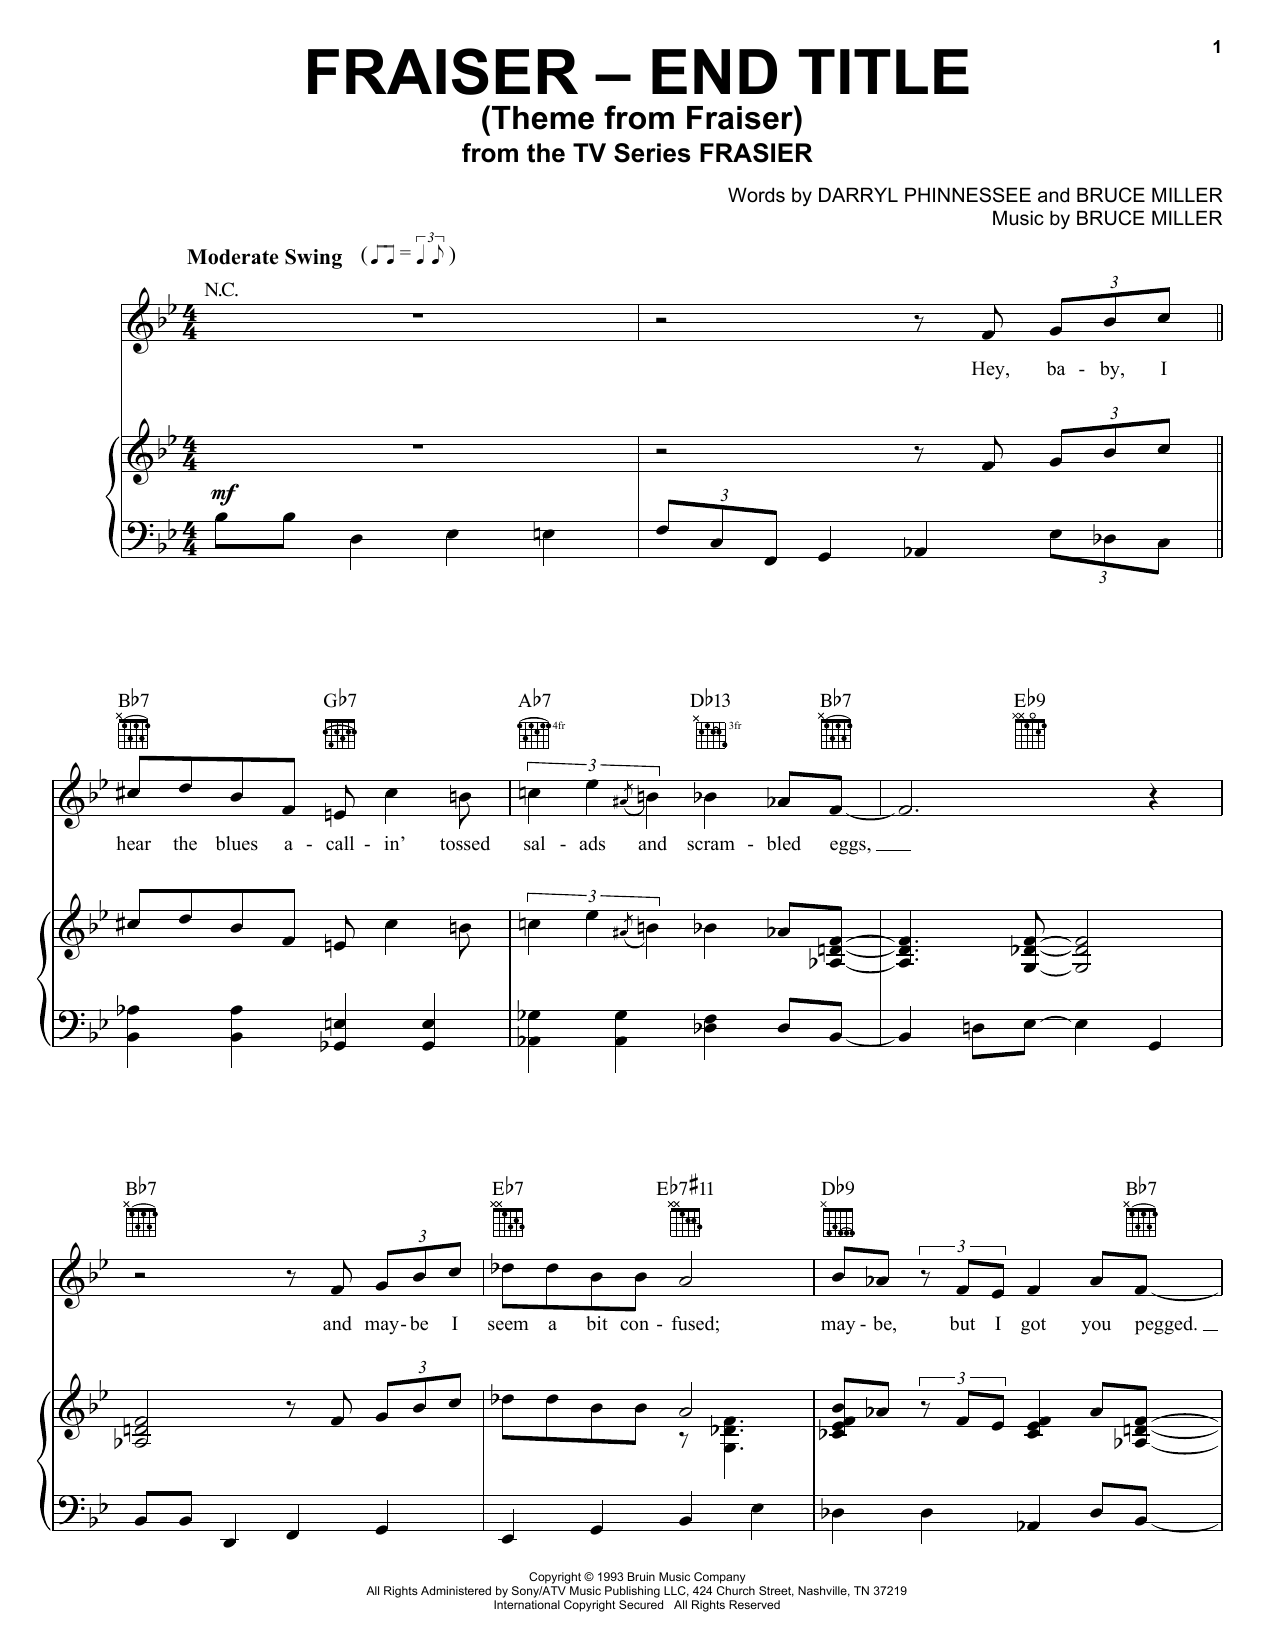 Bruce Miller Theme From Frasier sheet music notes and chords